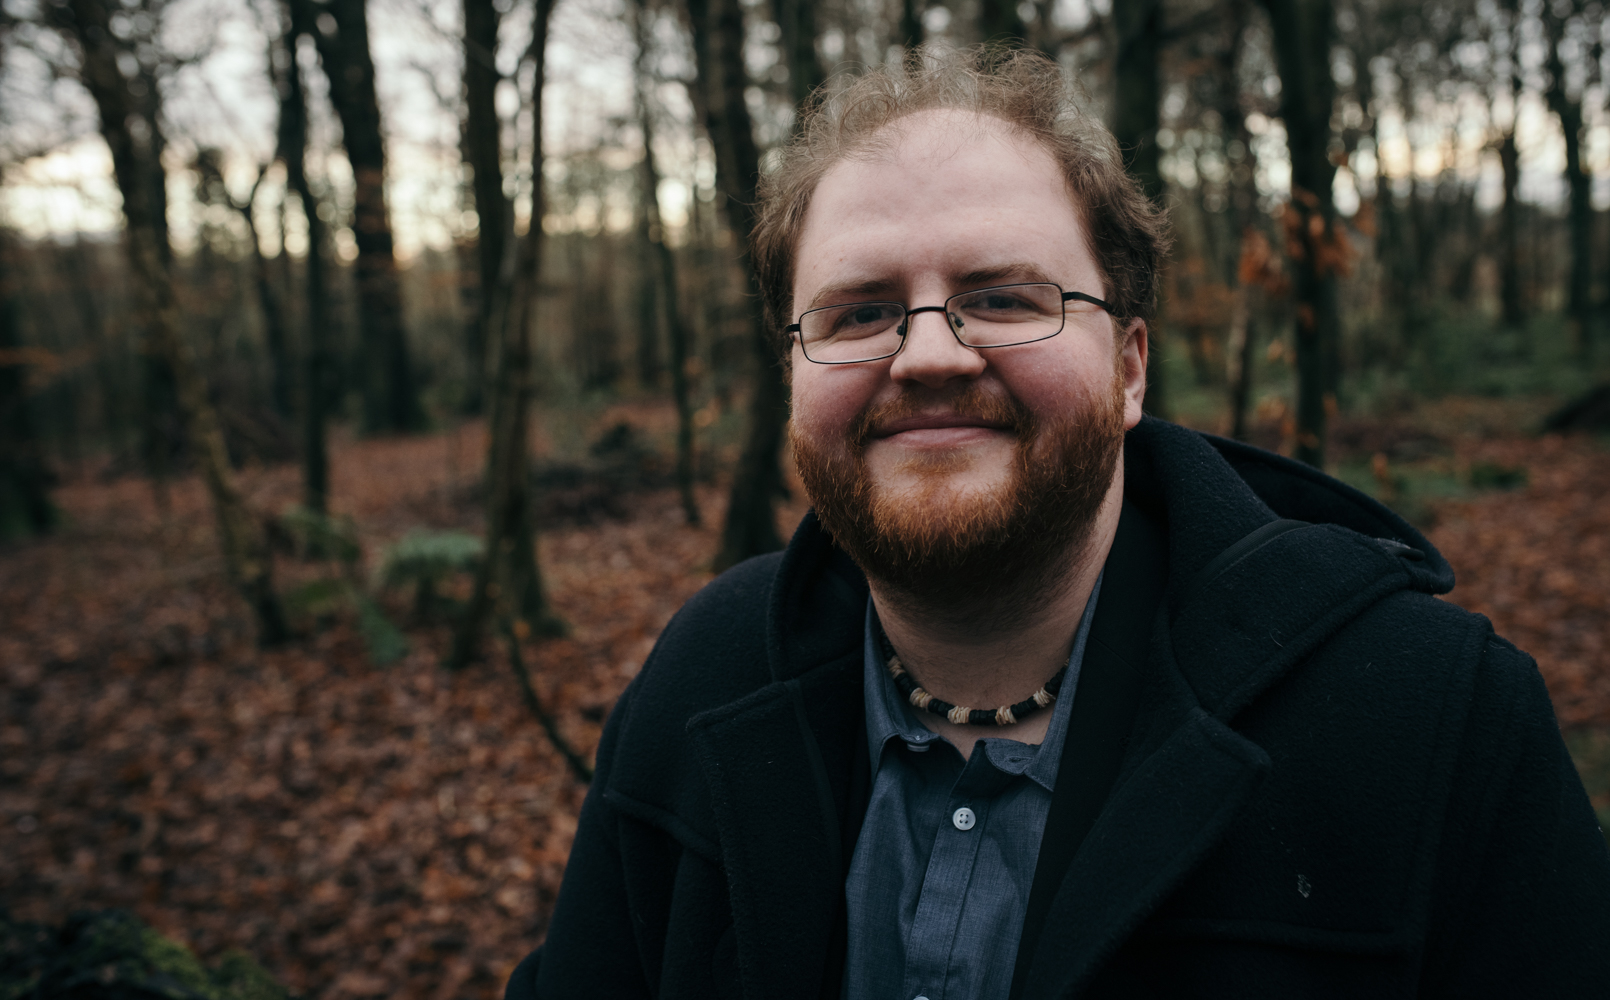 A portrait photograph of Russ in the woods